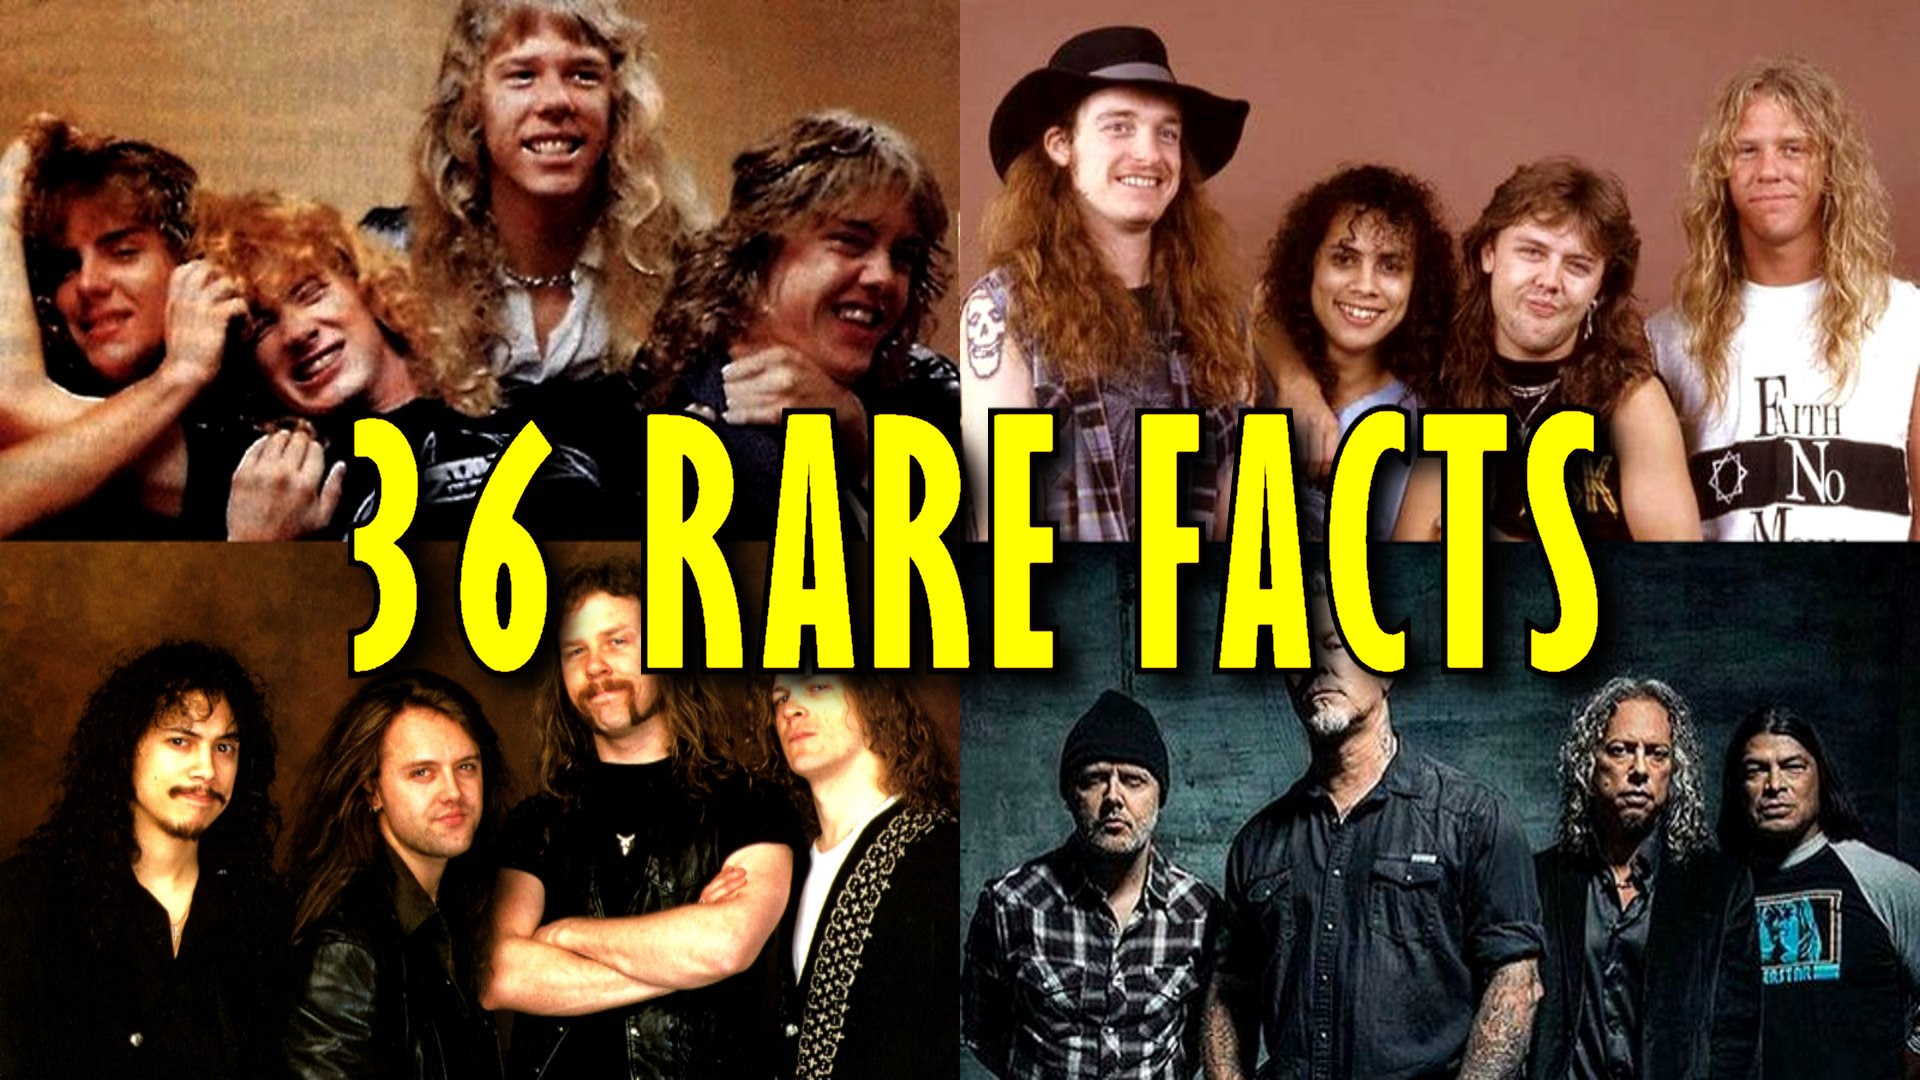 36 rare facts about Metallica Andriy Vasylenko